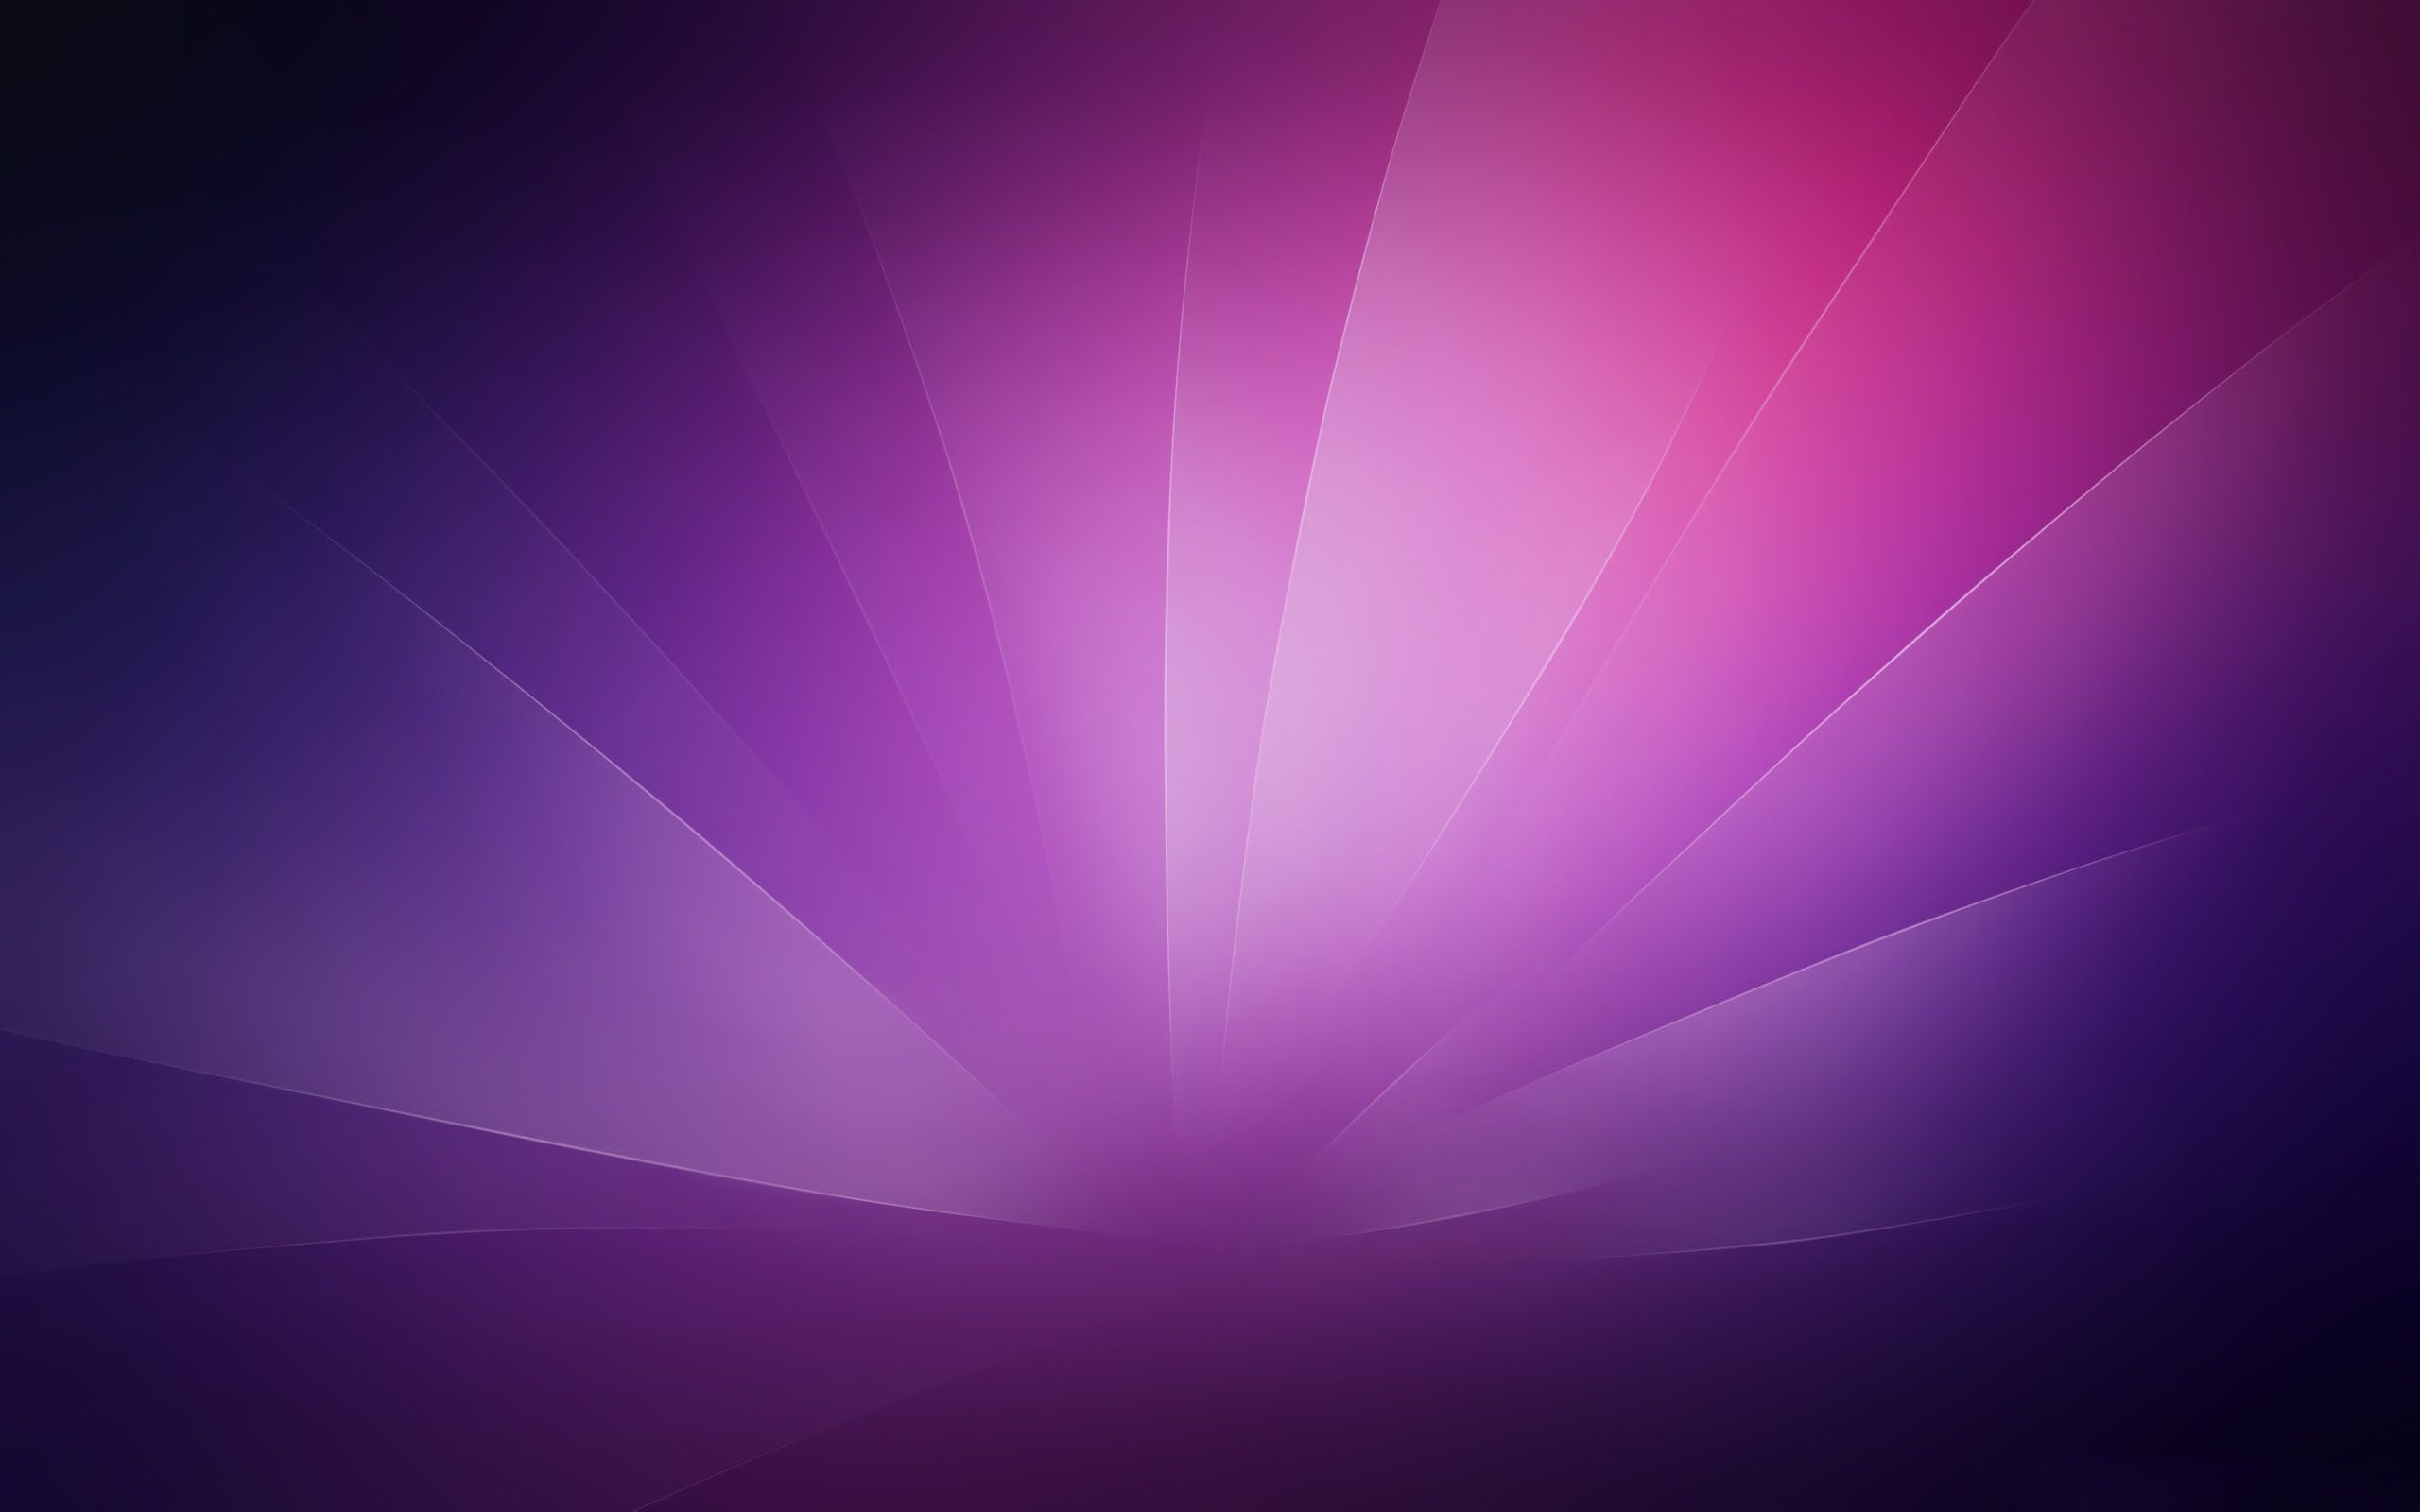 Purple and blue pattern background